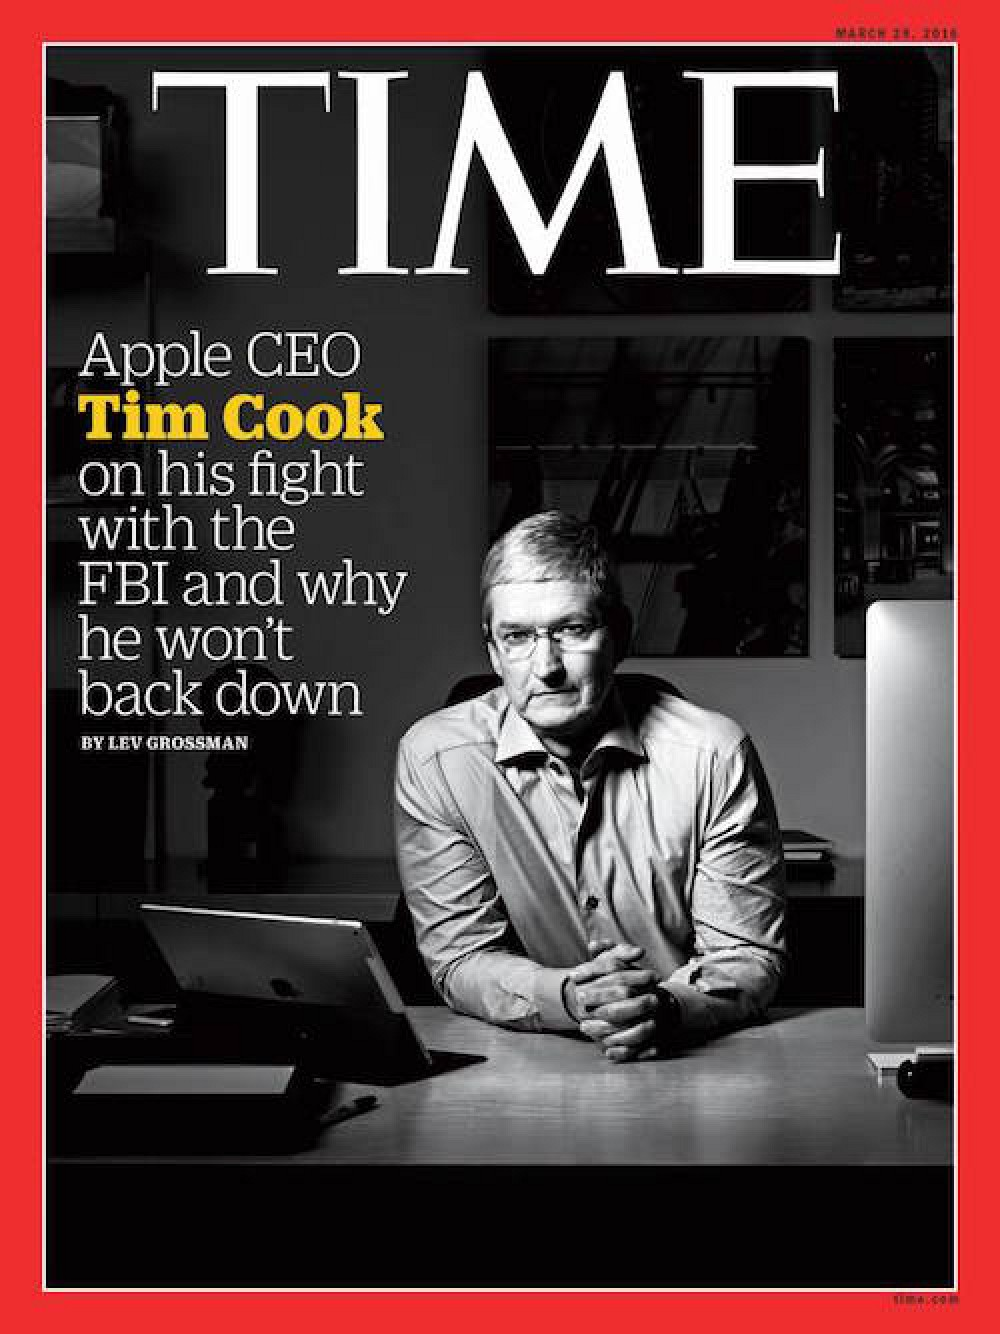 Tim-Cook-TIME-cover-Apple-vs-FBI.jpg